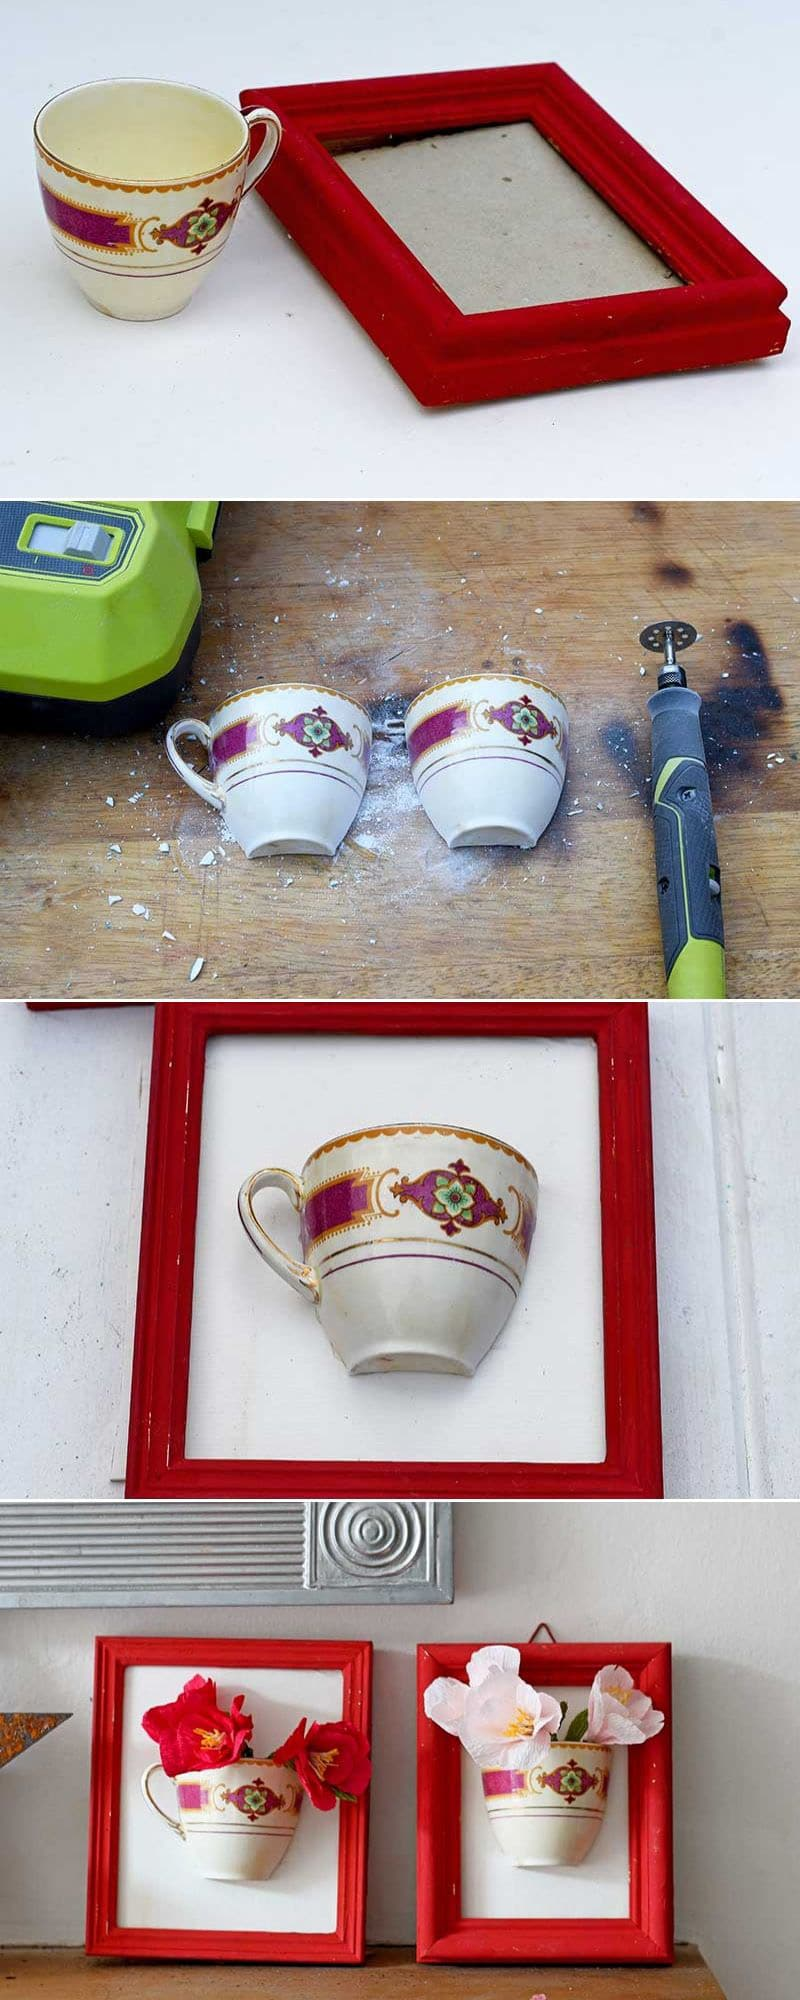 DIY China teacup wall vase